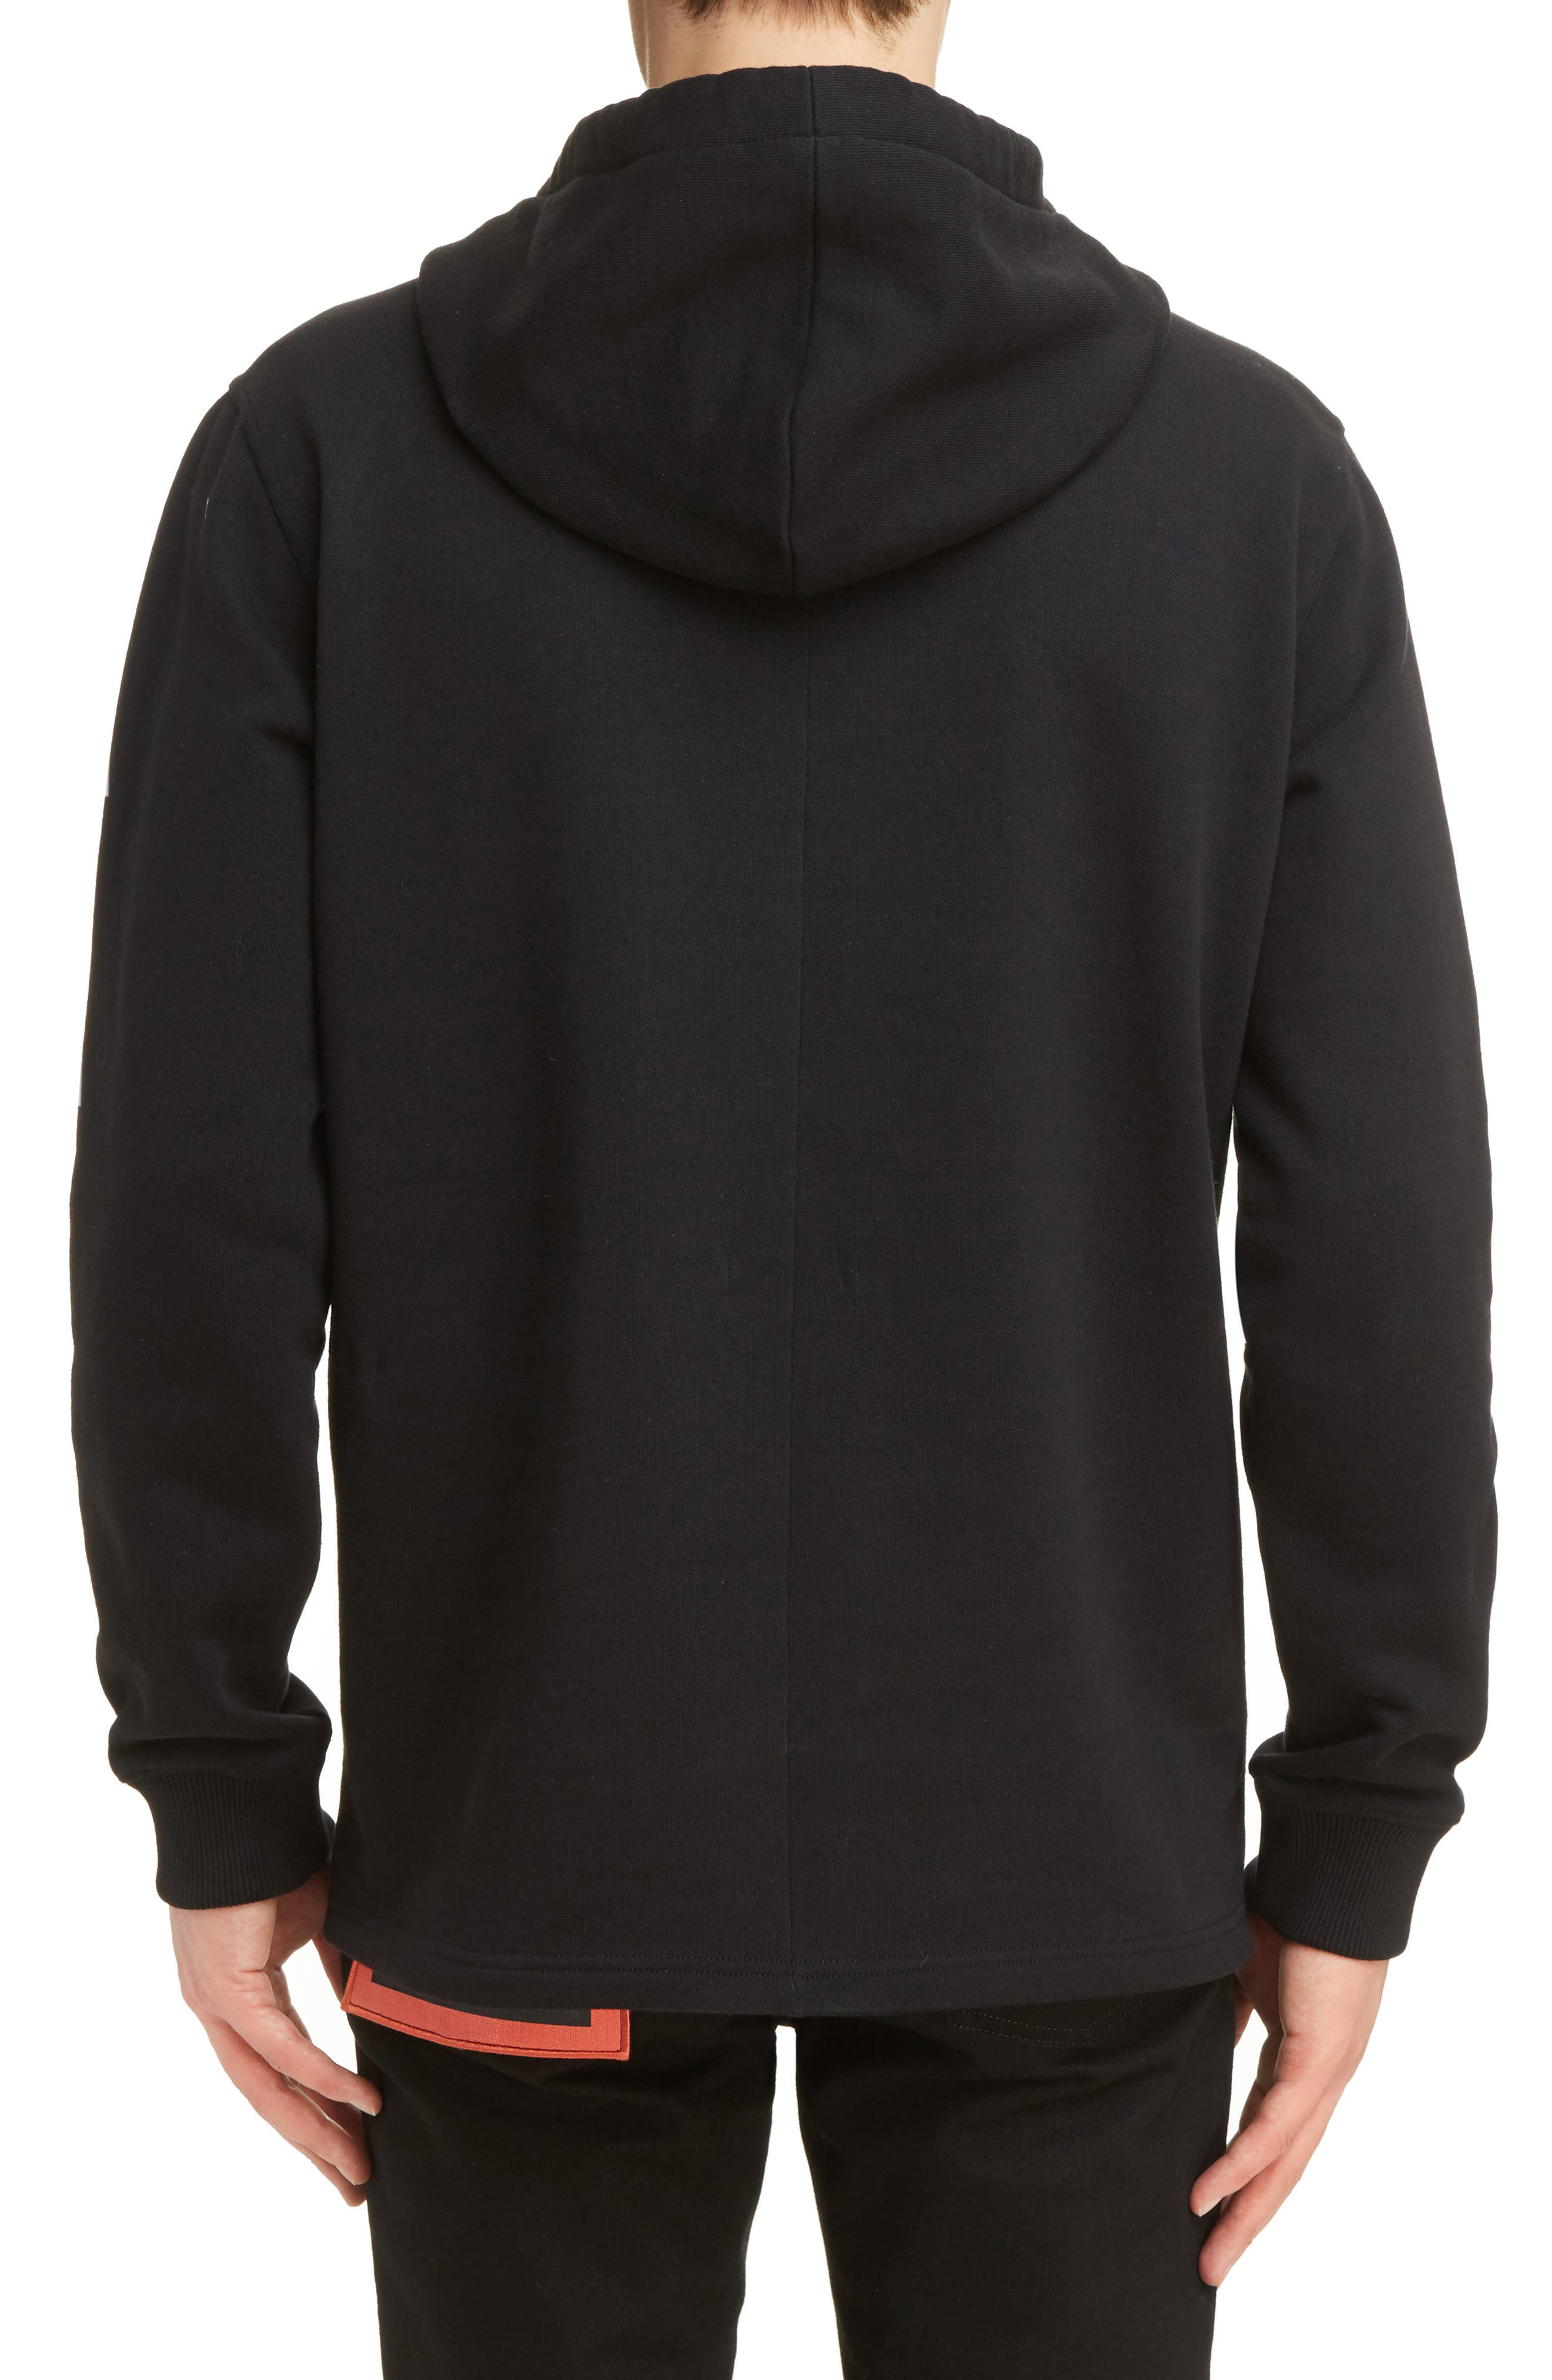 Abstract Photo Hoodie,                             Alternate thumbnail 2, color,                             001